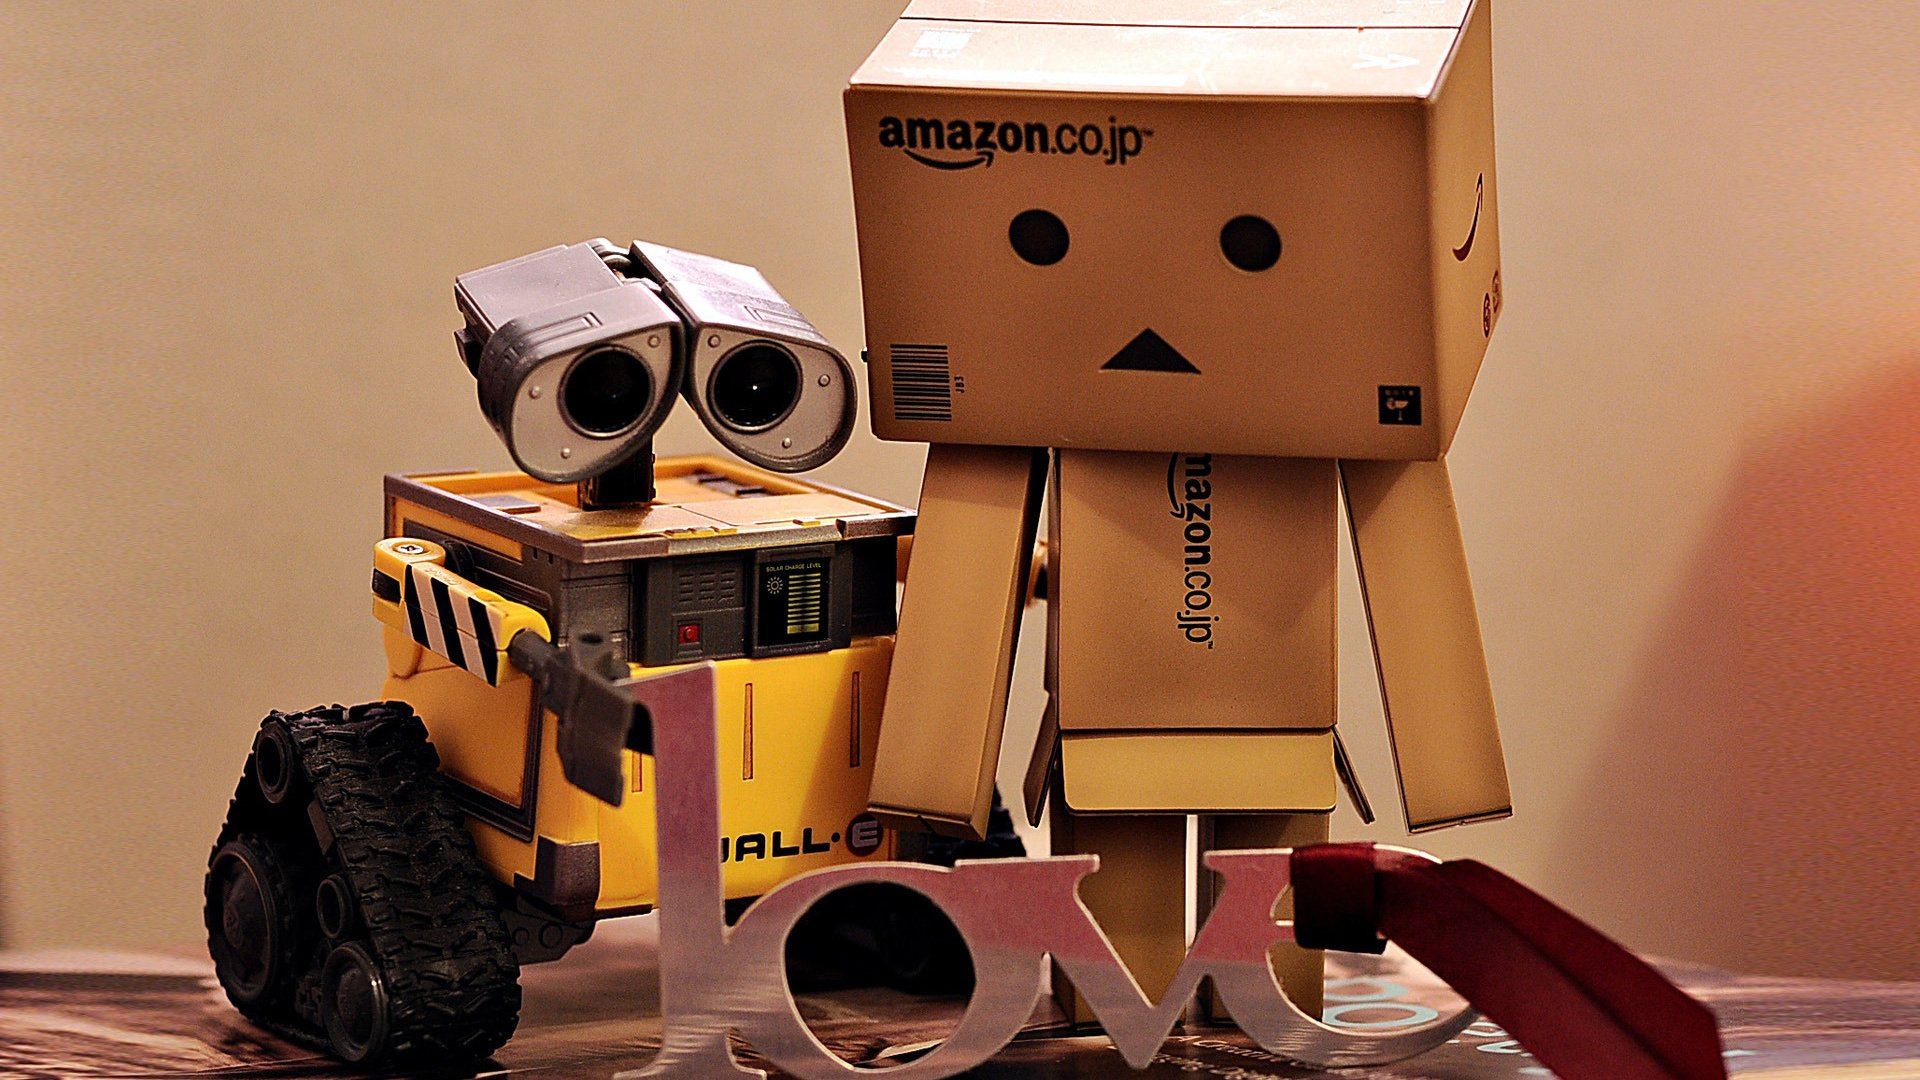 98 Danbo HD Wallpapers